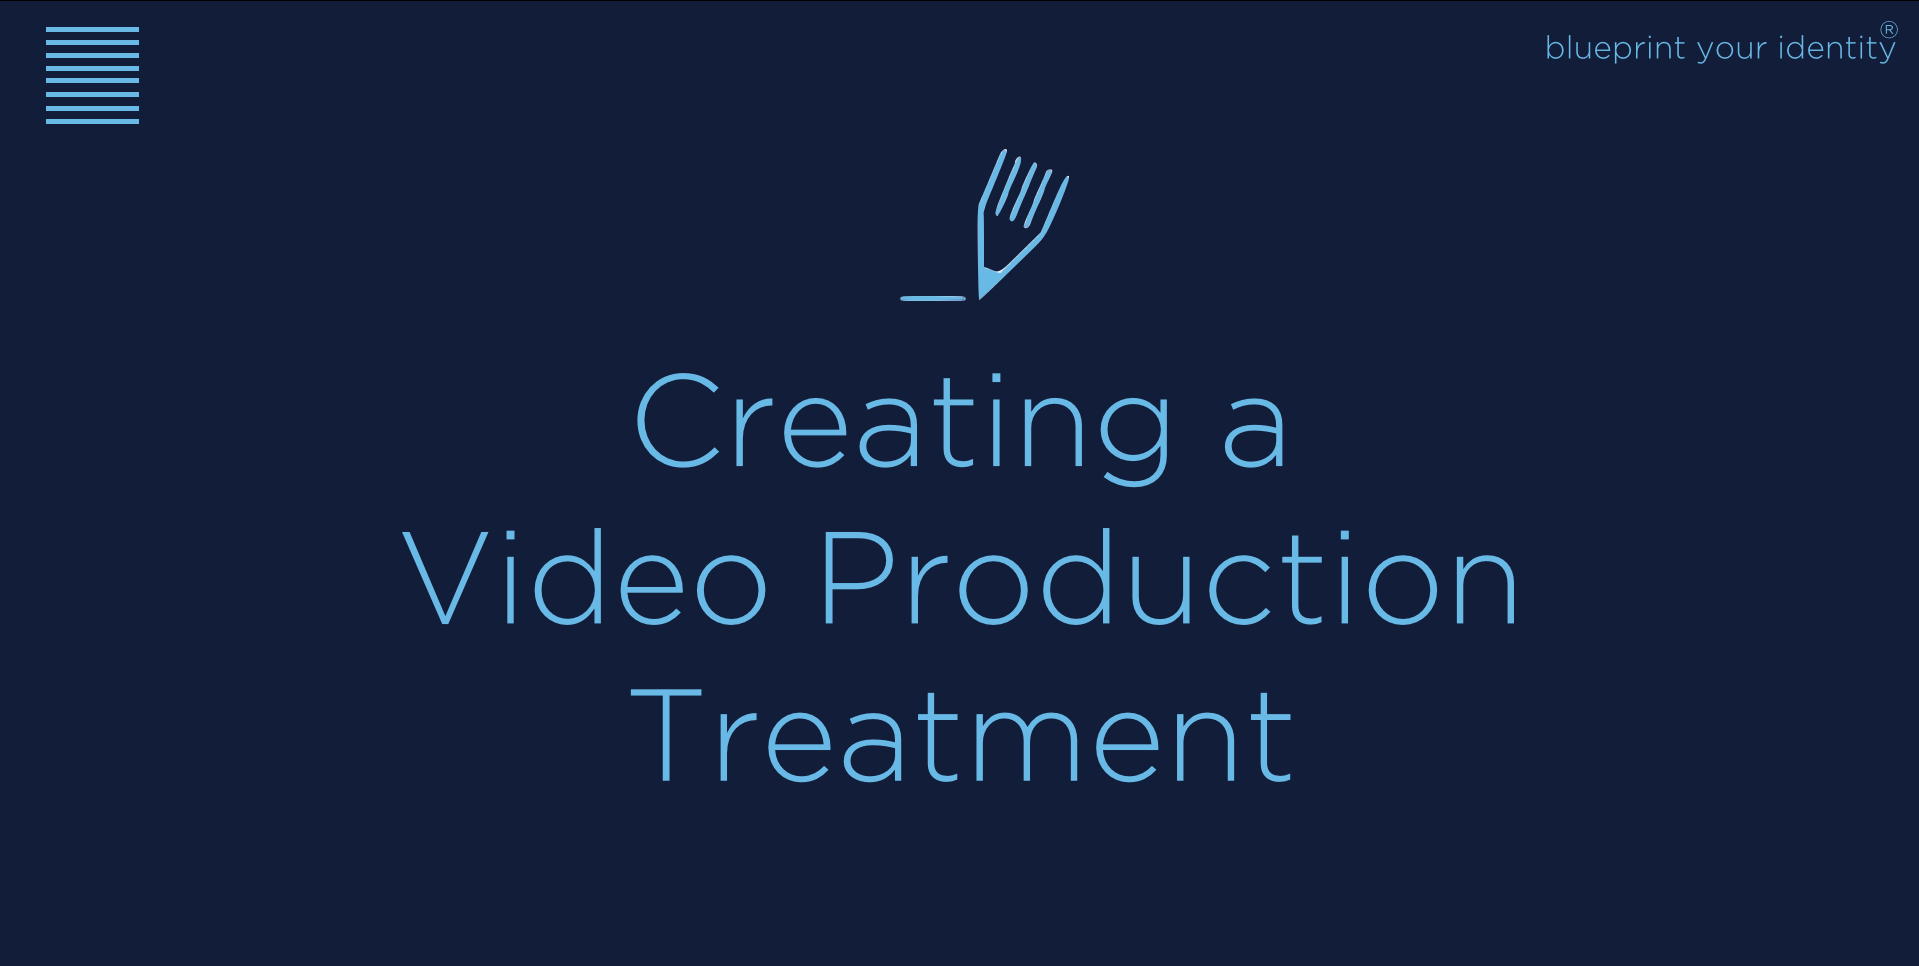 Creating_a_Video_Production_Treatment.png